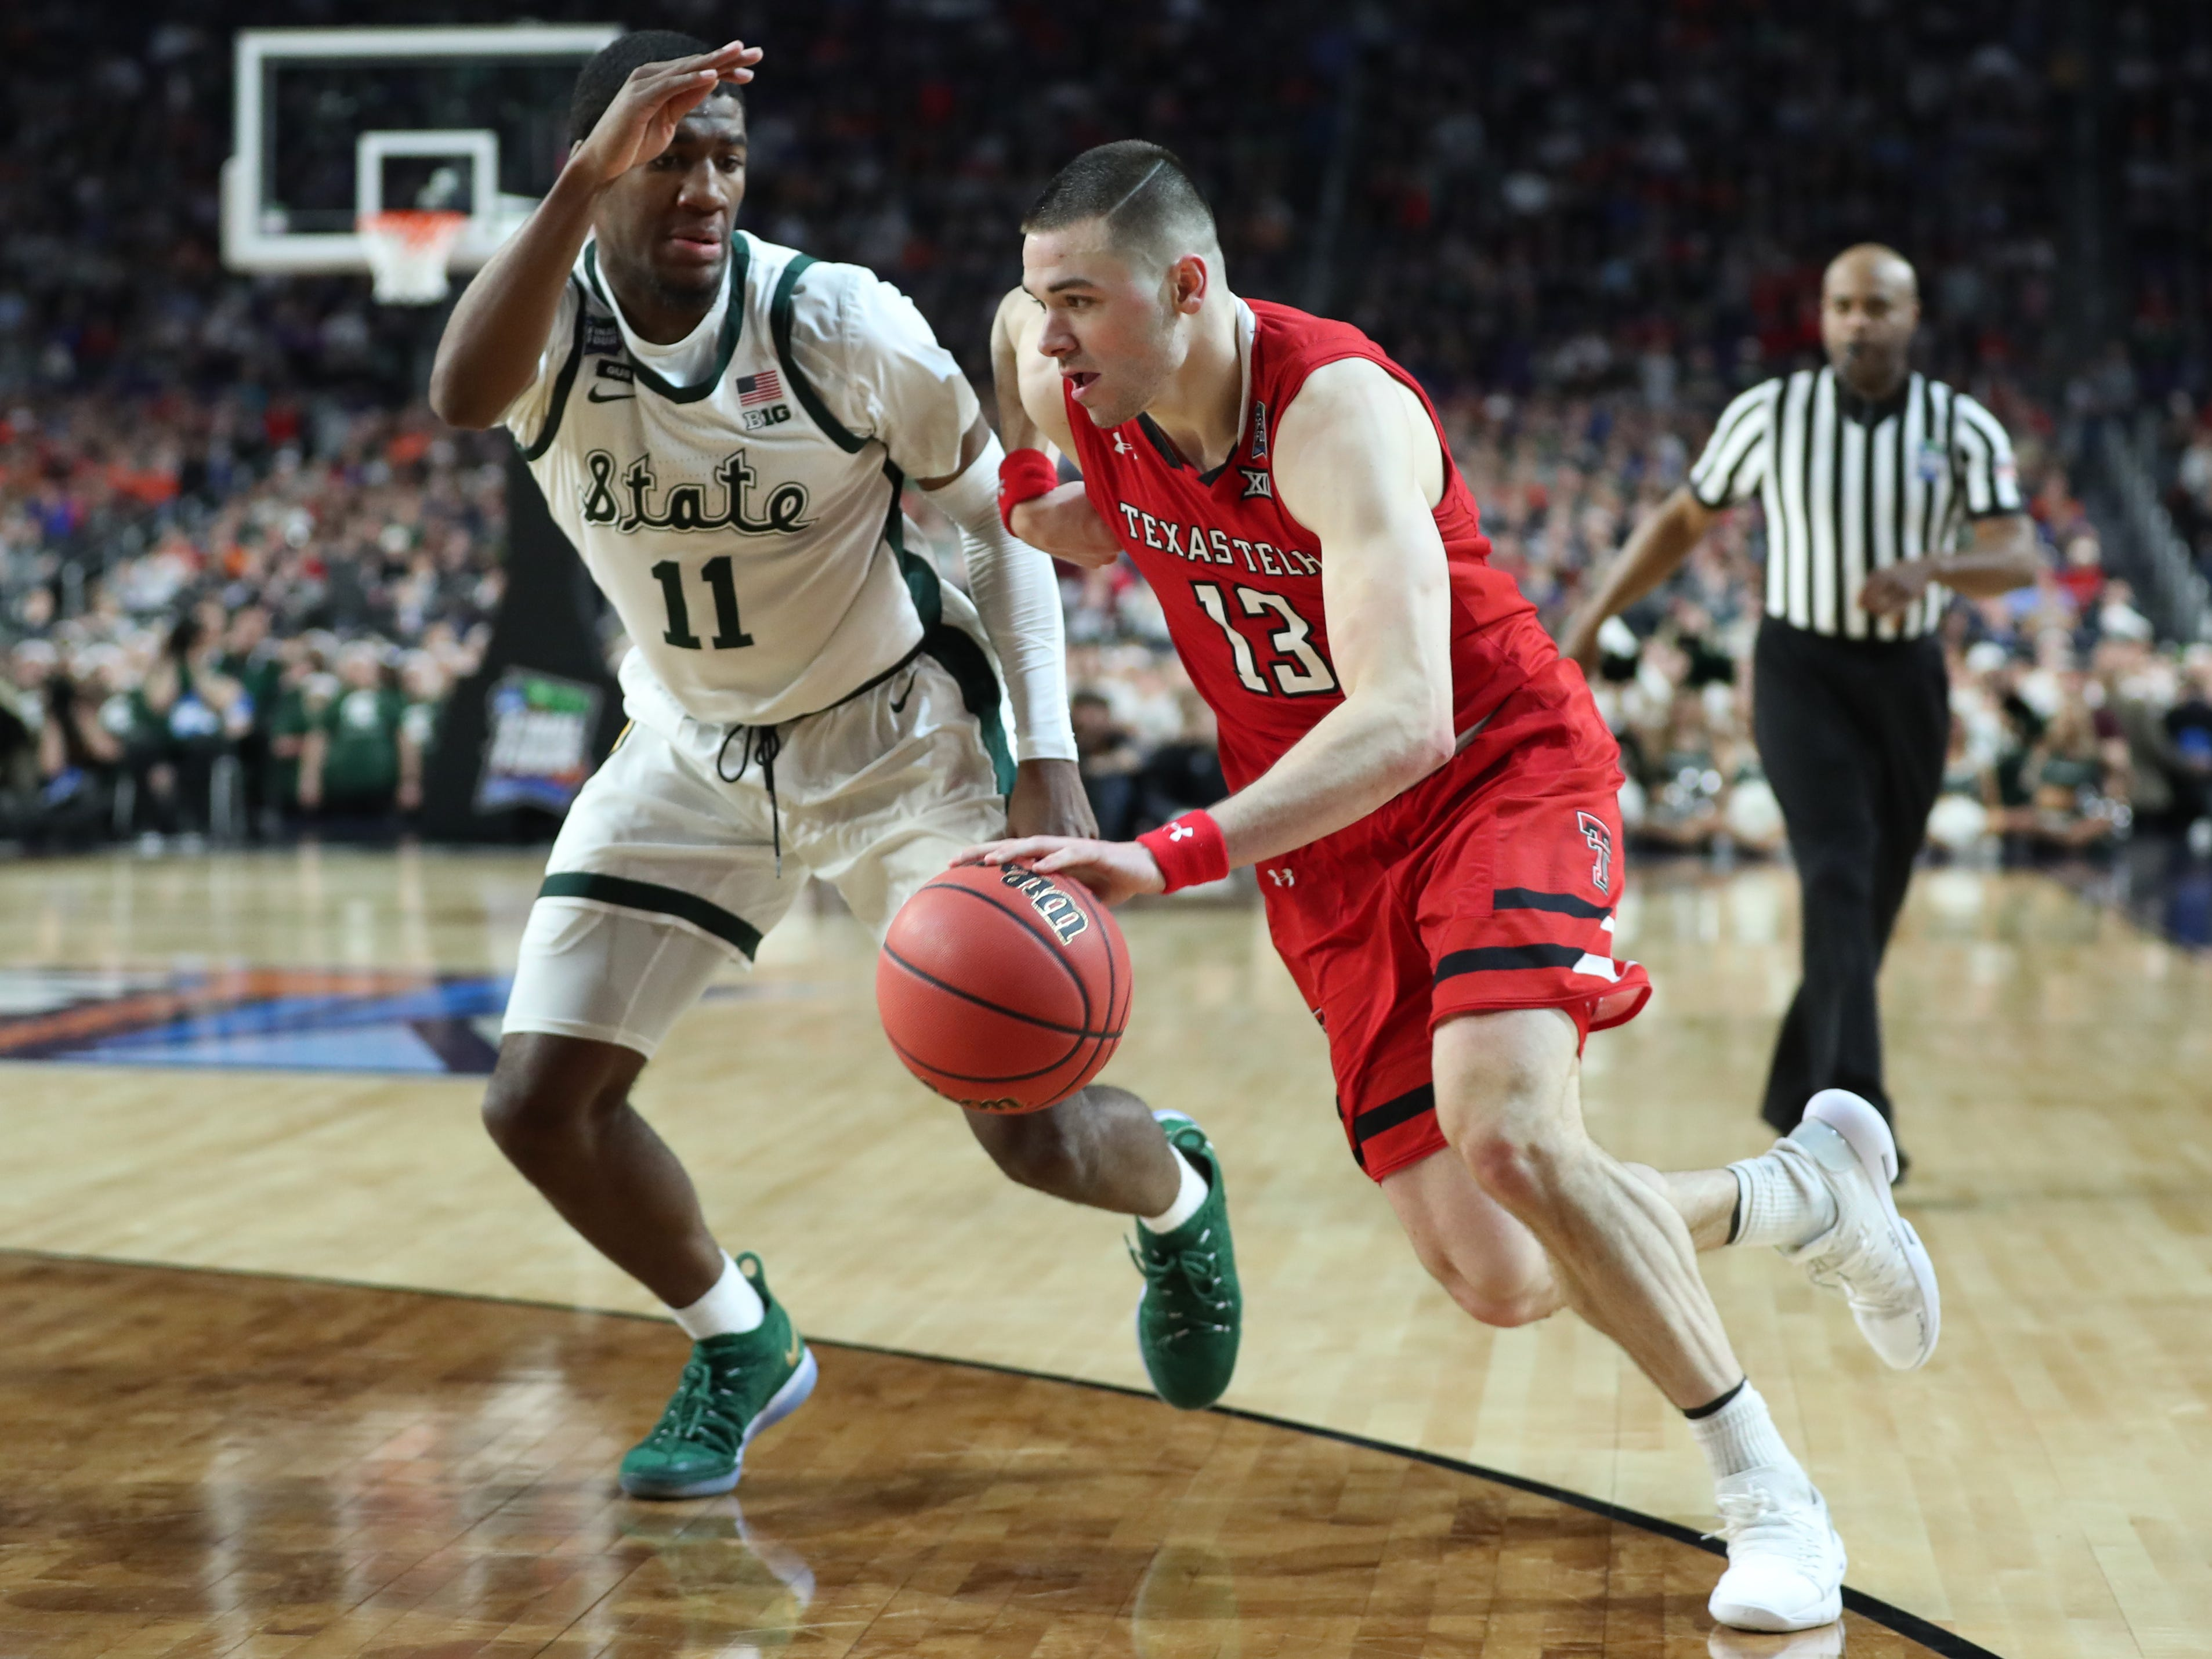 Michigan State forward Aaron Henry defends Texas Tech guard Matt Mooney in the second half of the Final Four game at U.S. Bank Stadium in Minneapolis, Minnesota on Saturday, April 6, 2019.